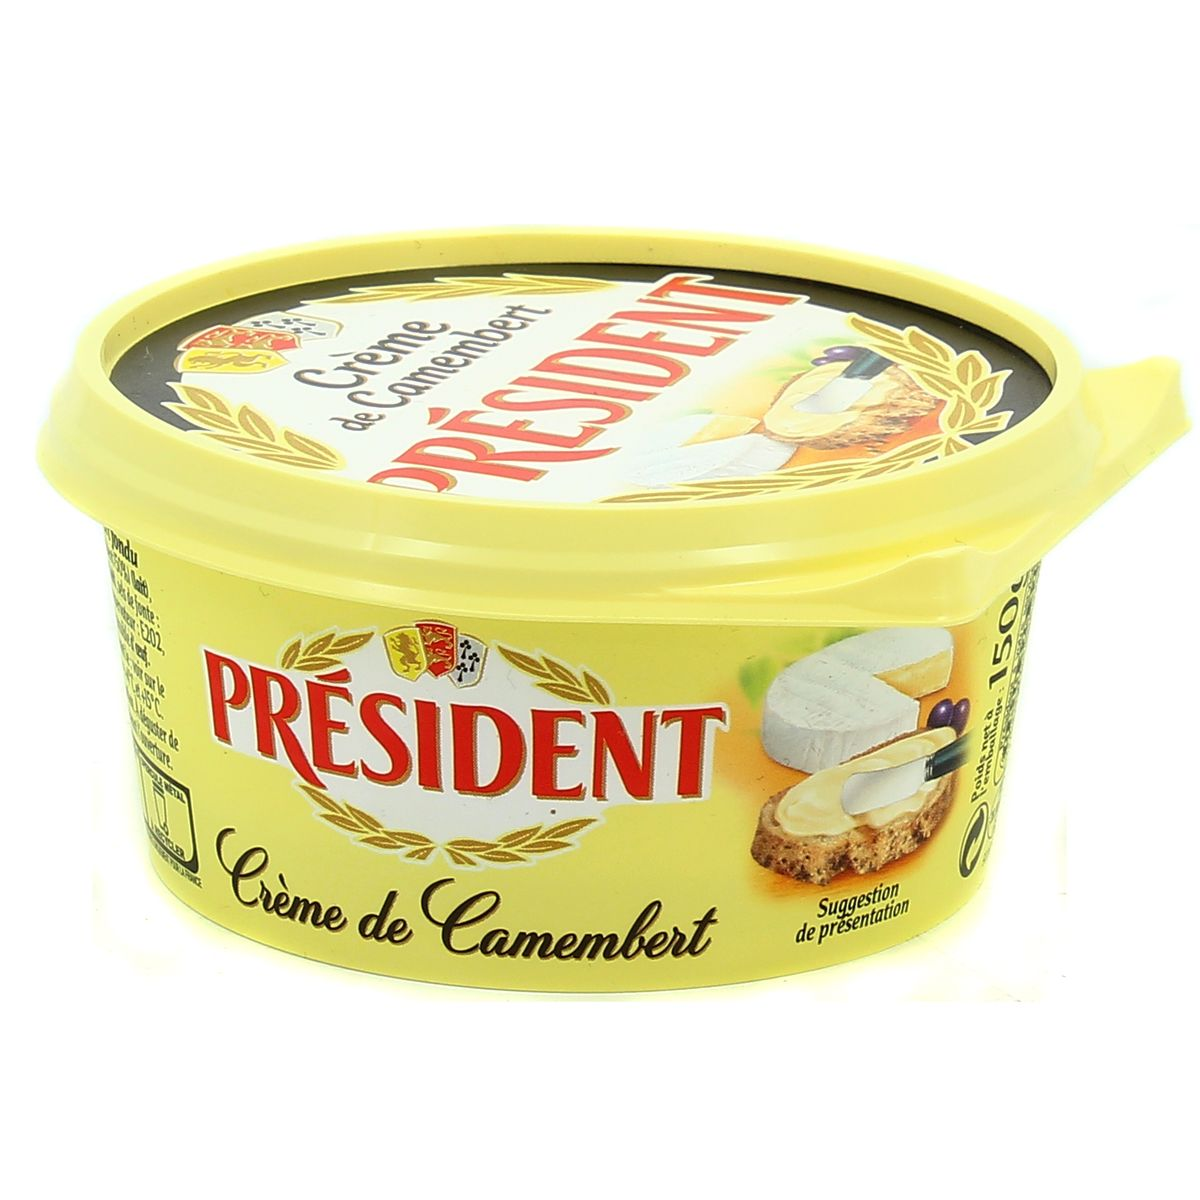 Image result for creme de camembert president